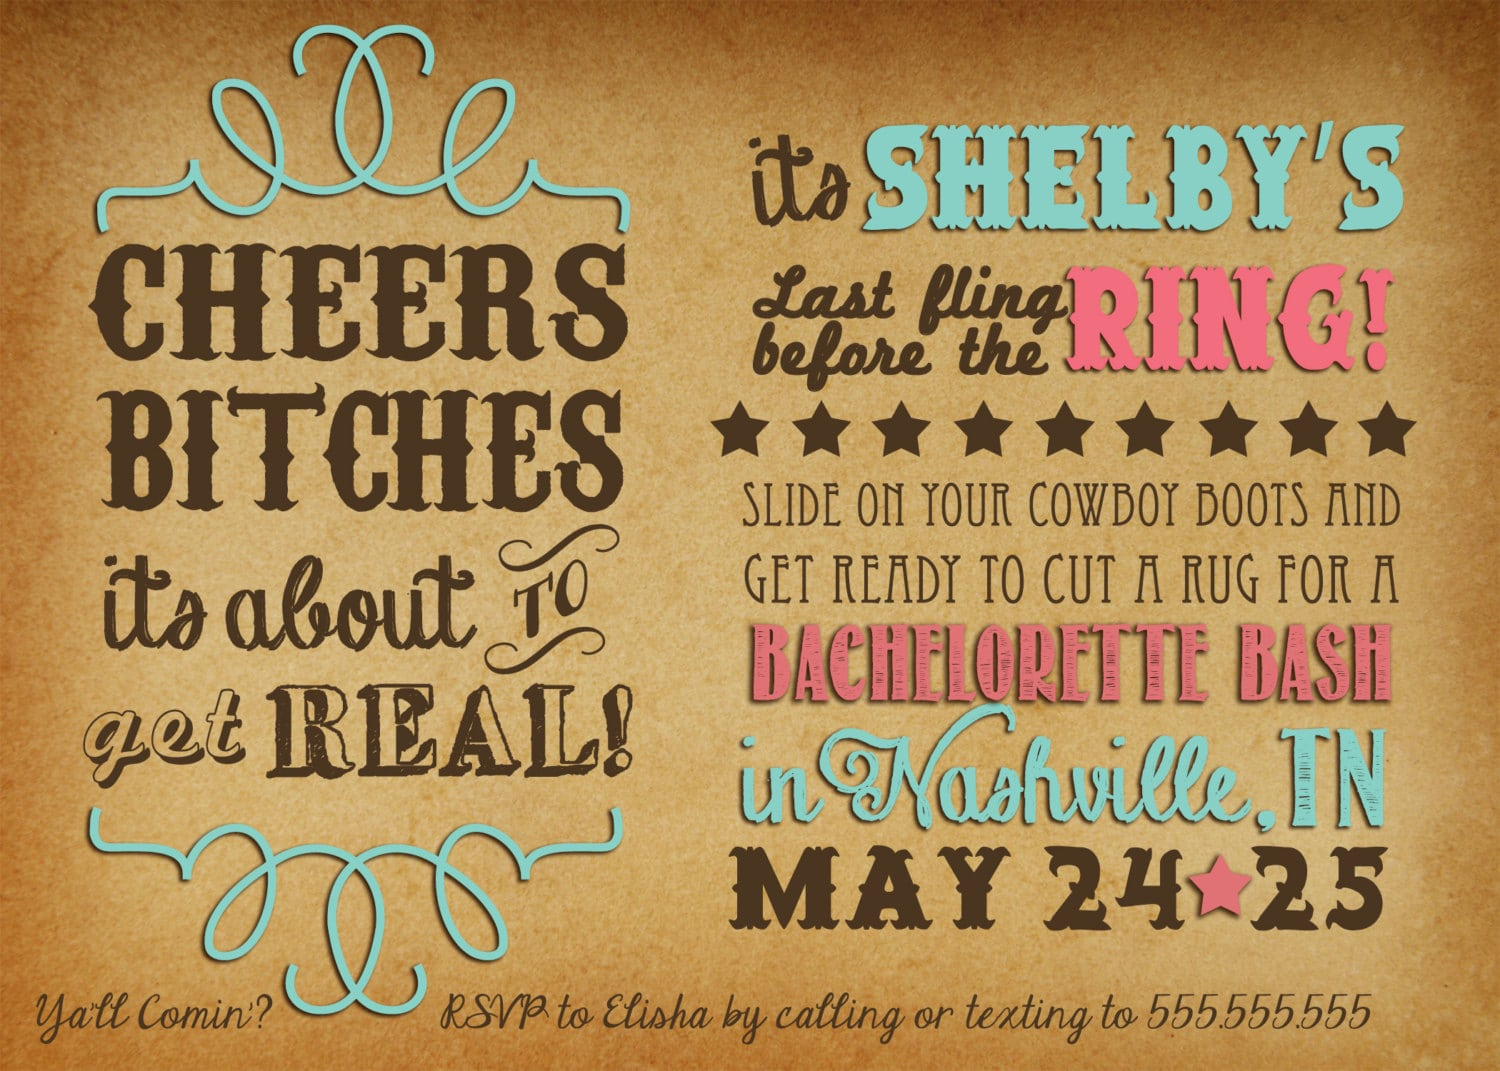 Cheers Bitches Western Bachelorette Party Invitation Digital